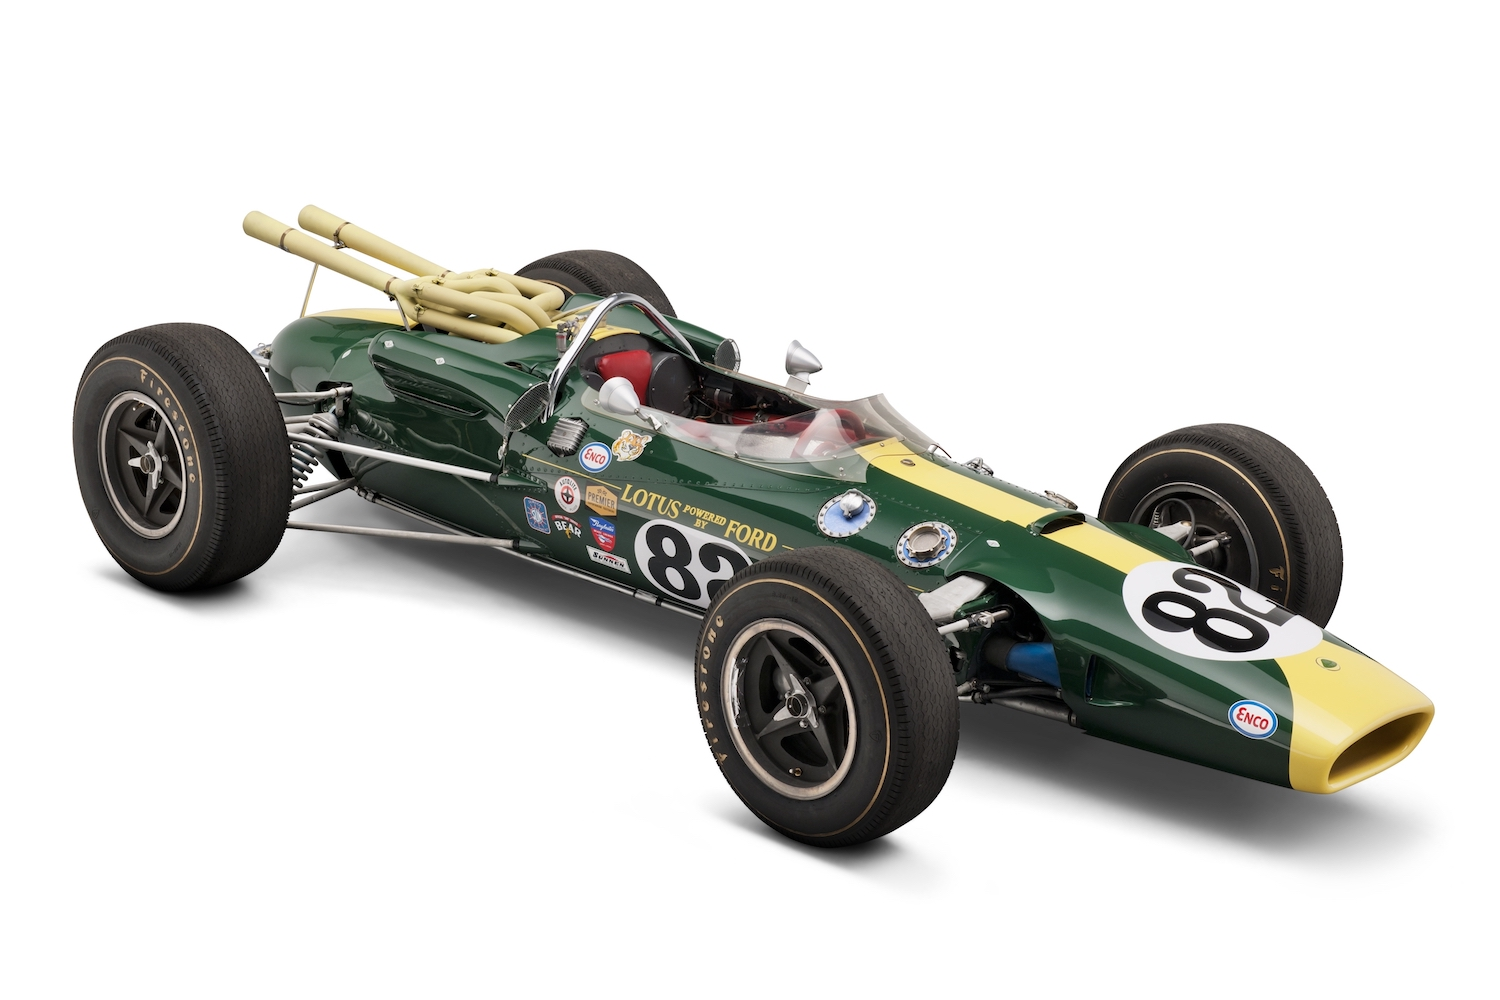 1965 Lotus Ford front three-quarter race car